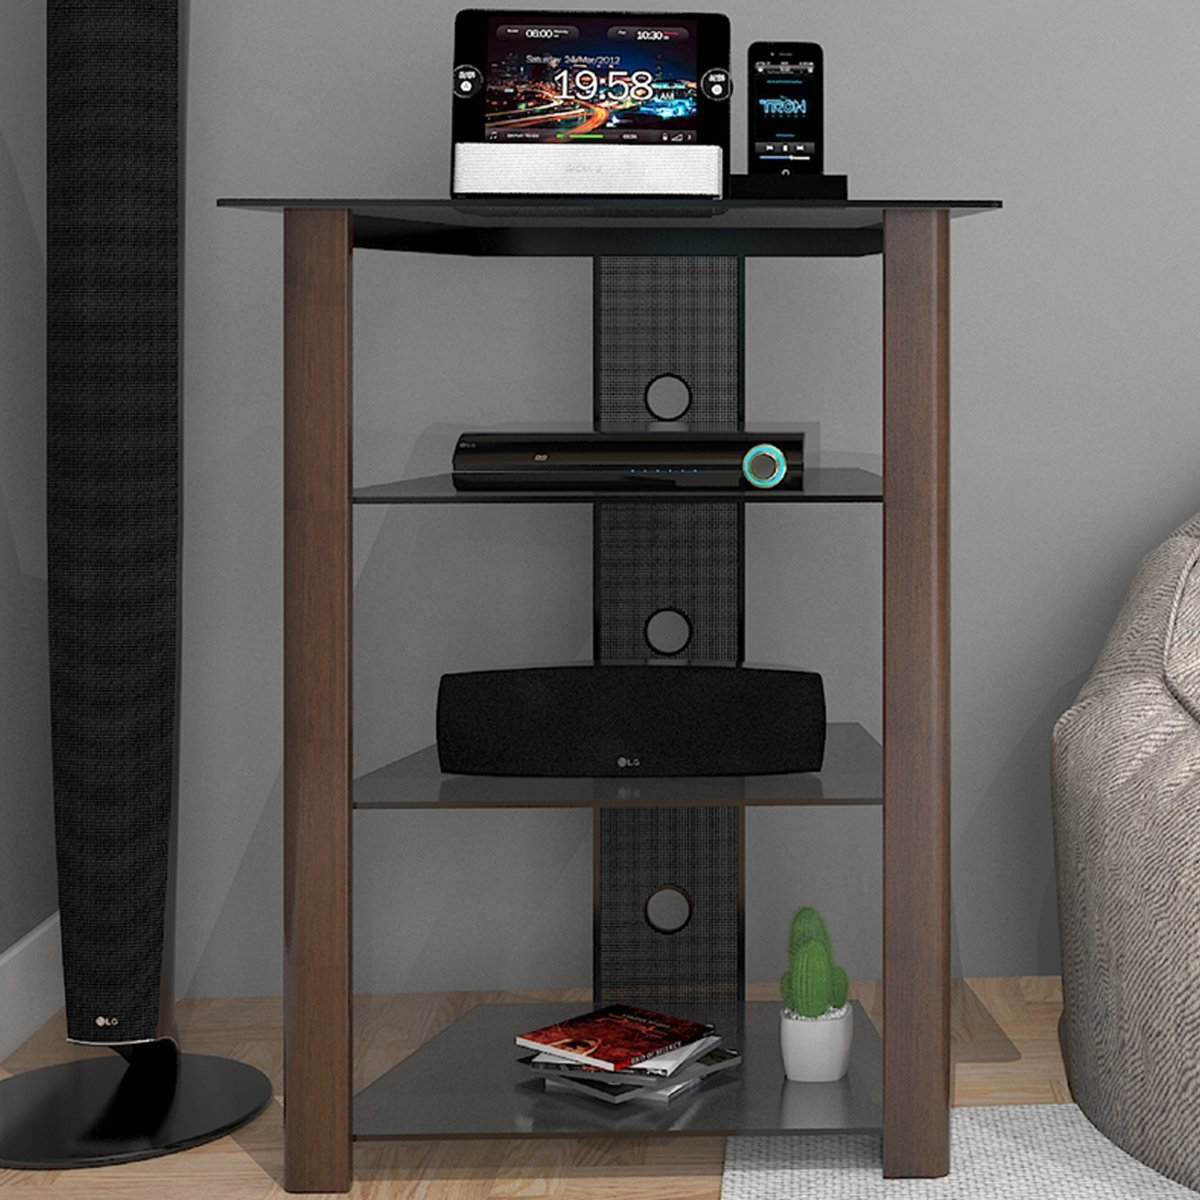 Ryan Rove Ashton Multi-Level Media Component Stand - Living Room Furniture, Home Theater System, Entertainment Center, Console S